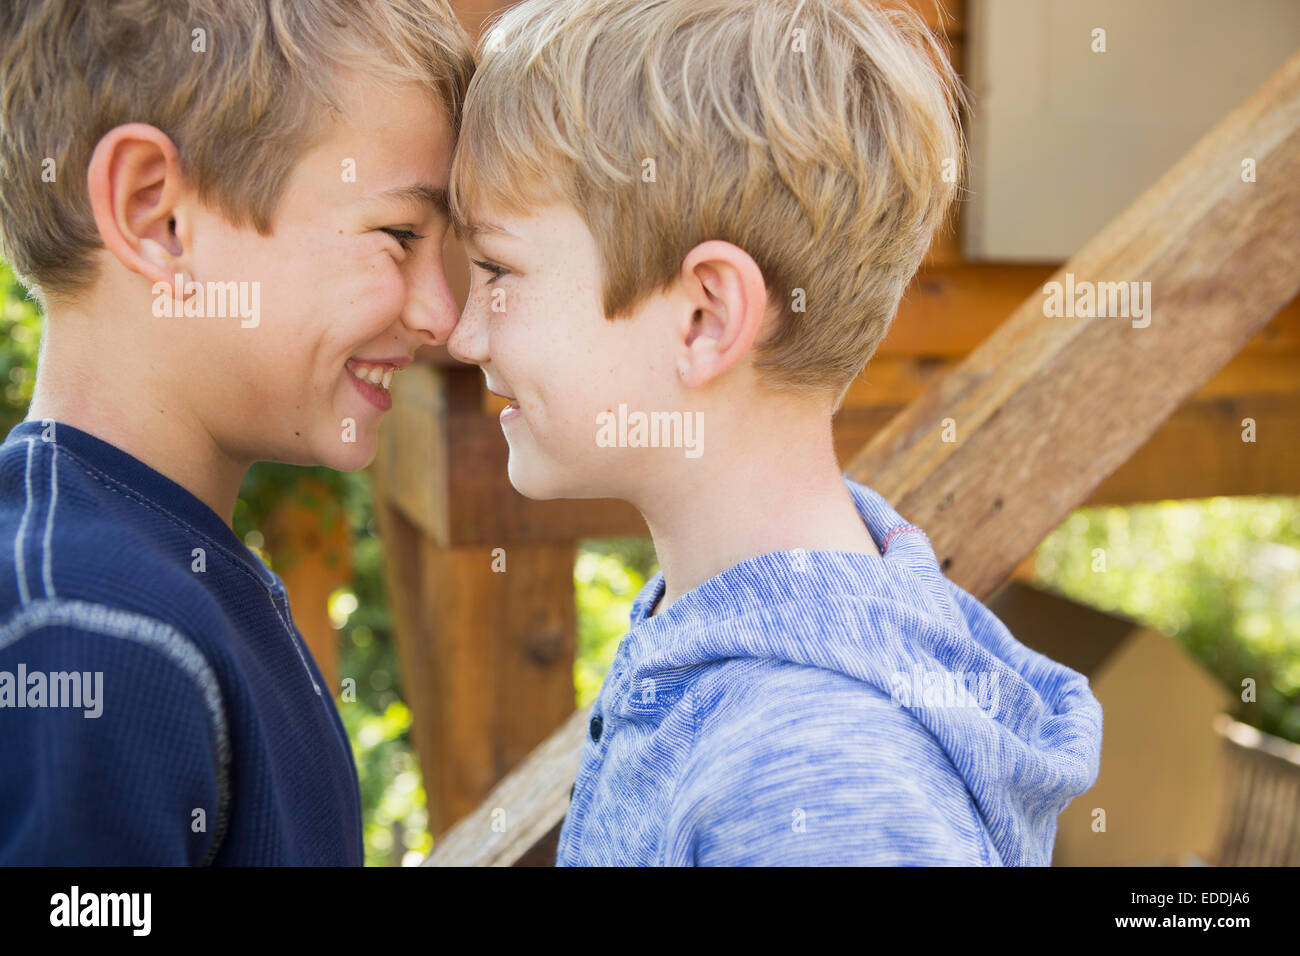 Two brothers playing in a garden, standing in front of a tree house. - Stock Image